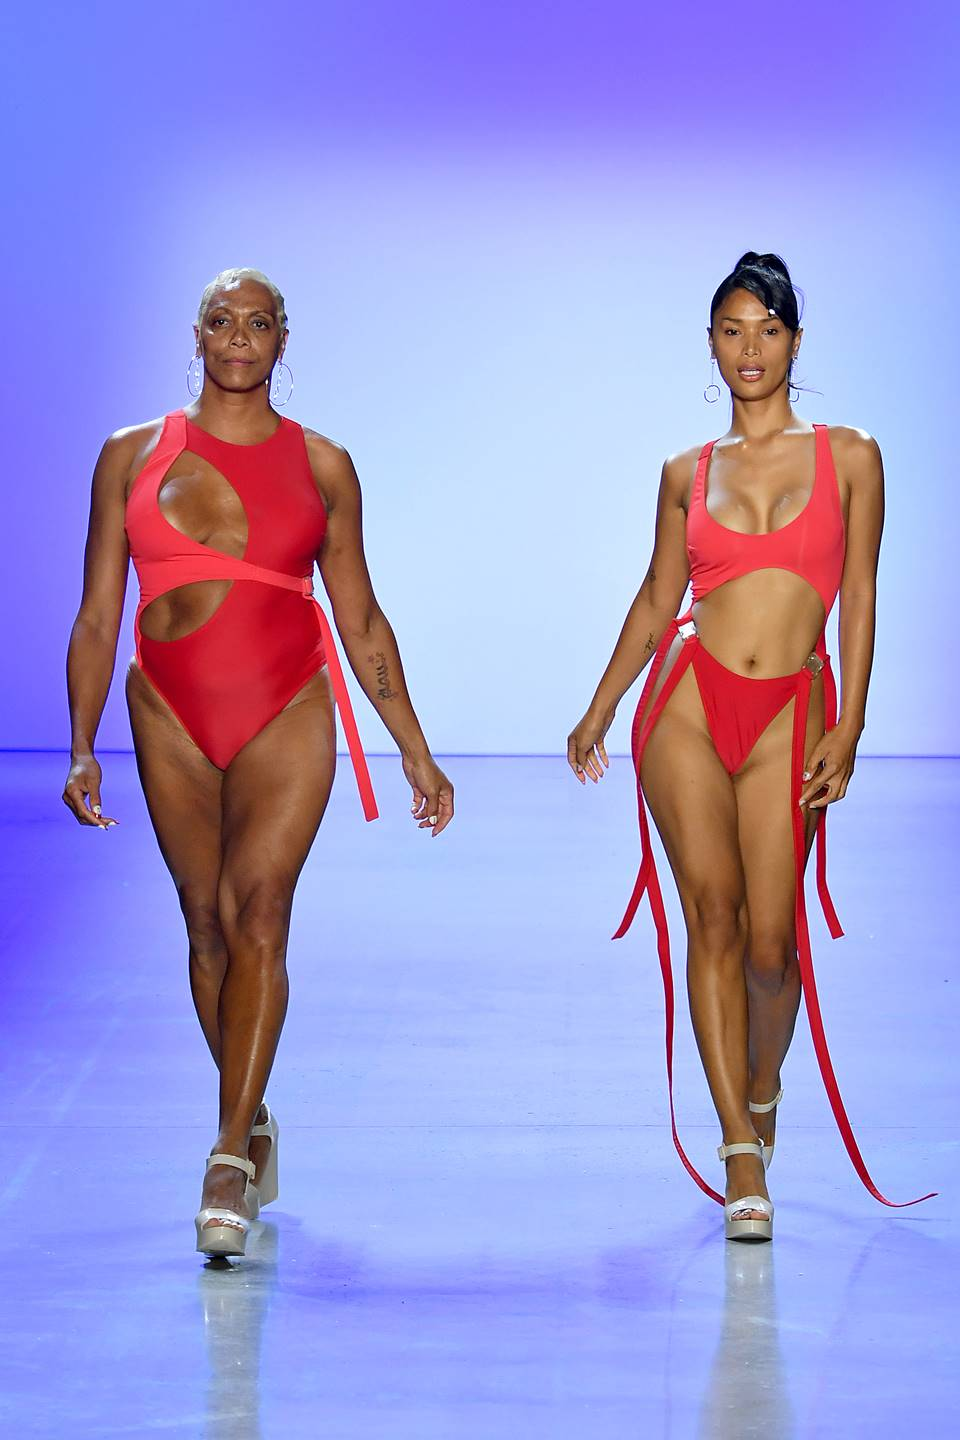 Mike Coppola/Getty Images for Chromat via Getty Images